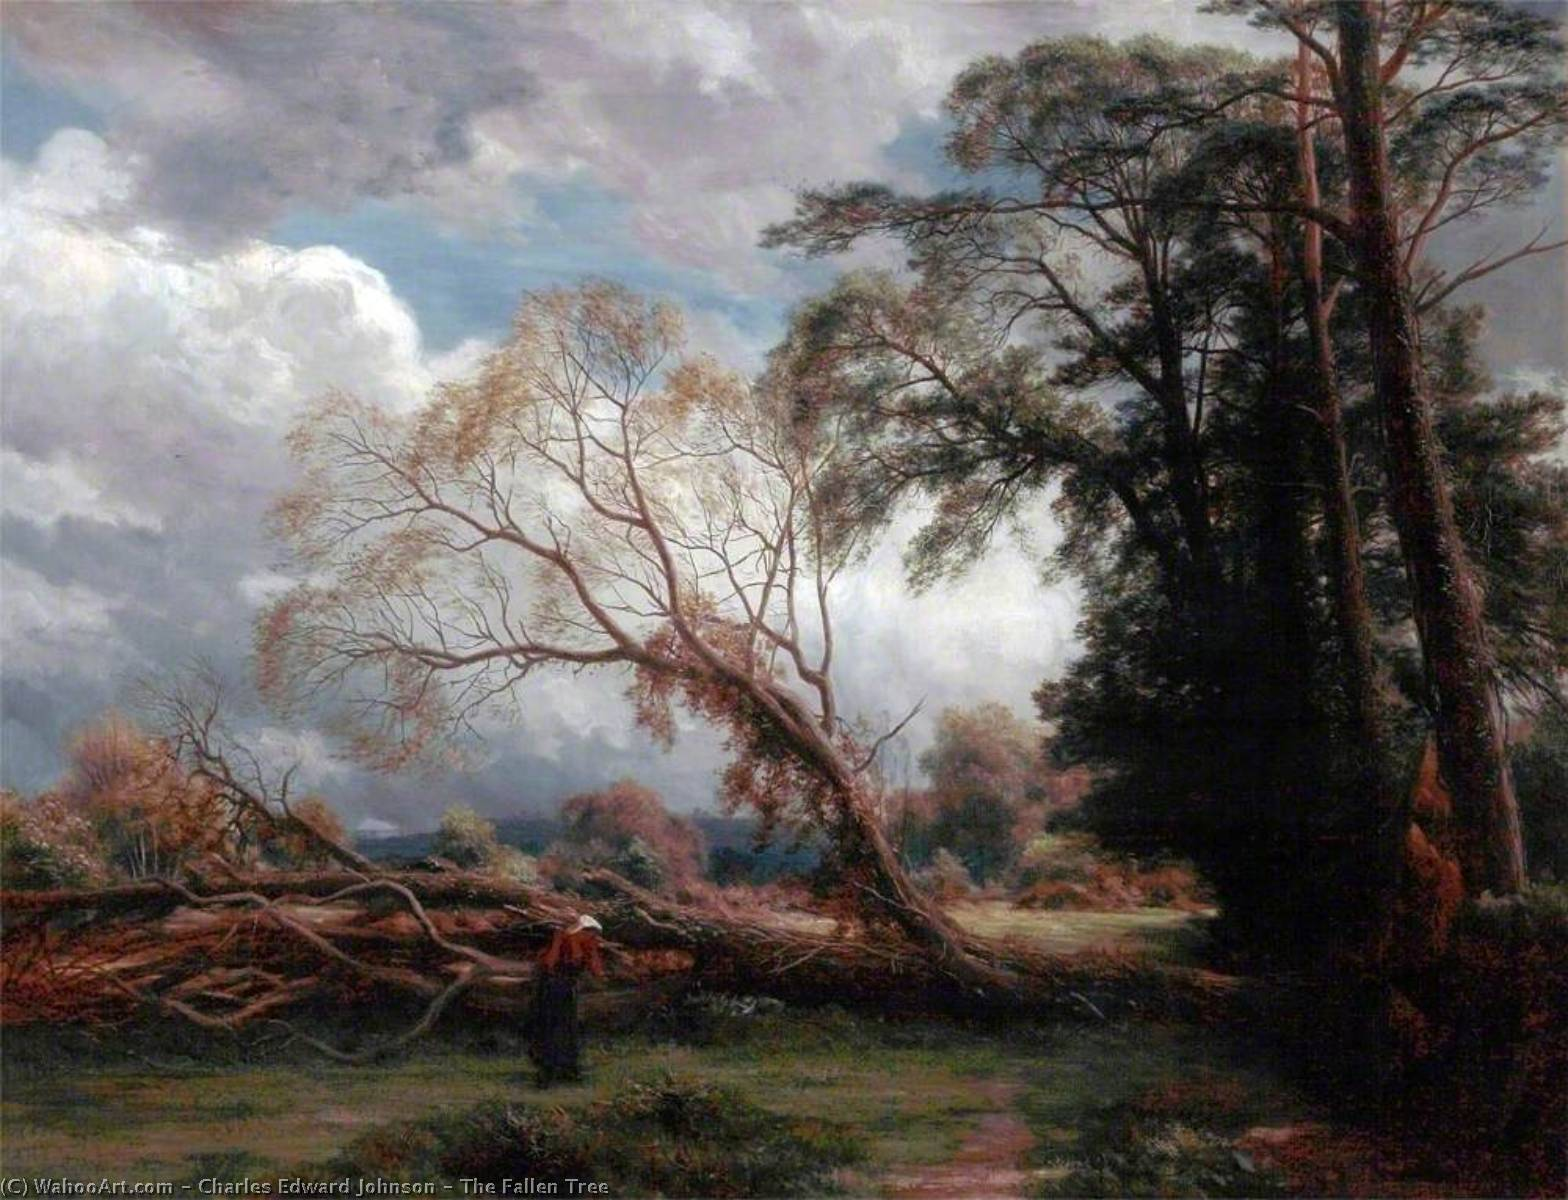 The Fallen Tree, 1882 by Charles Edward Johnson | Oil Painting | ArtsDot.com